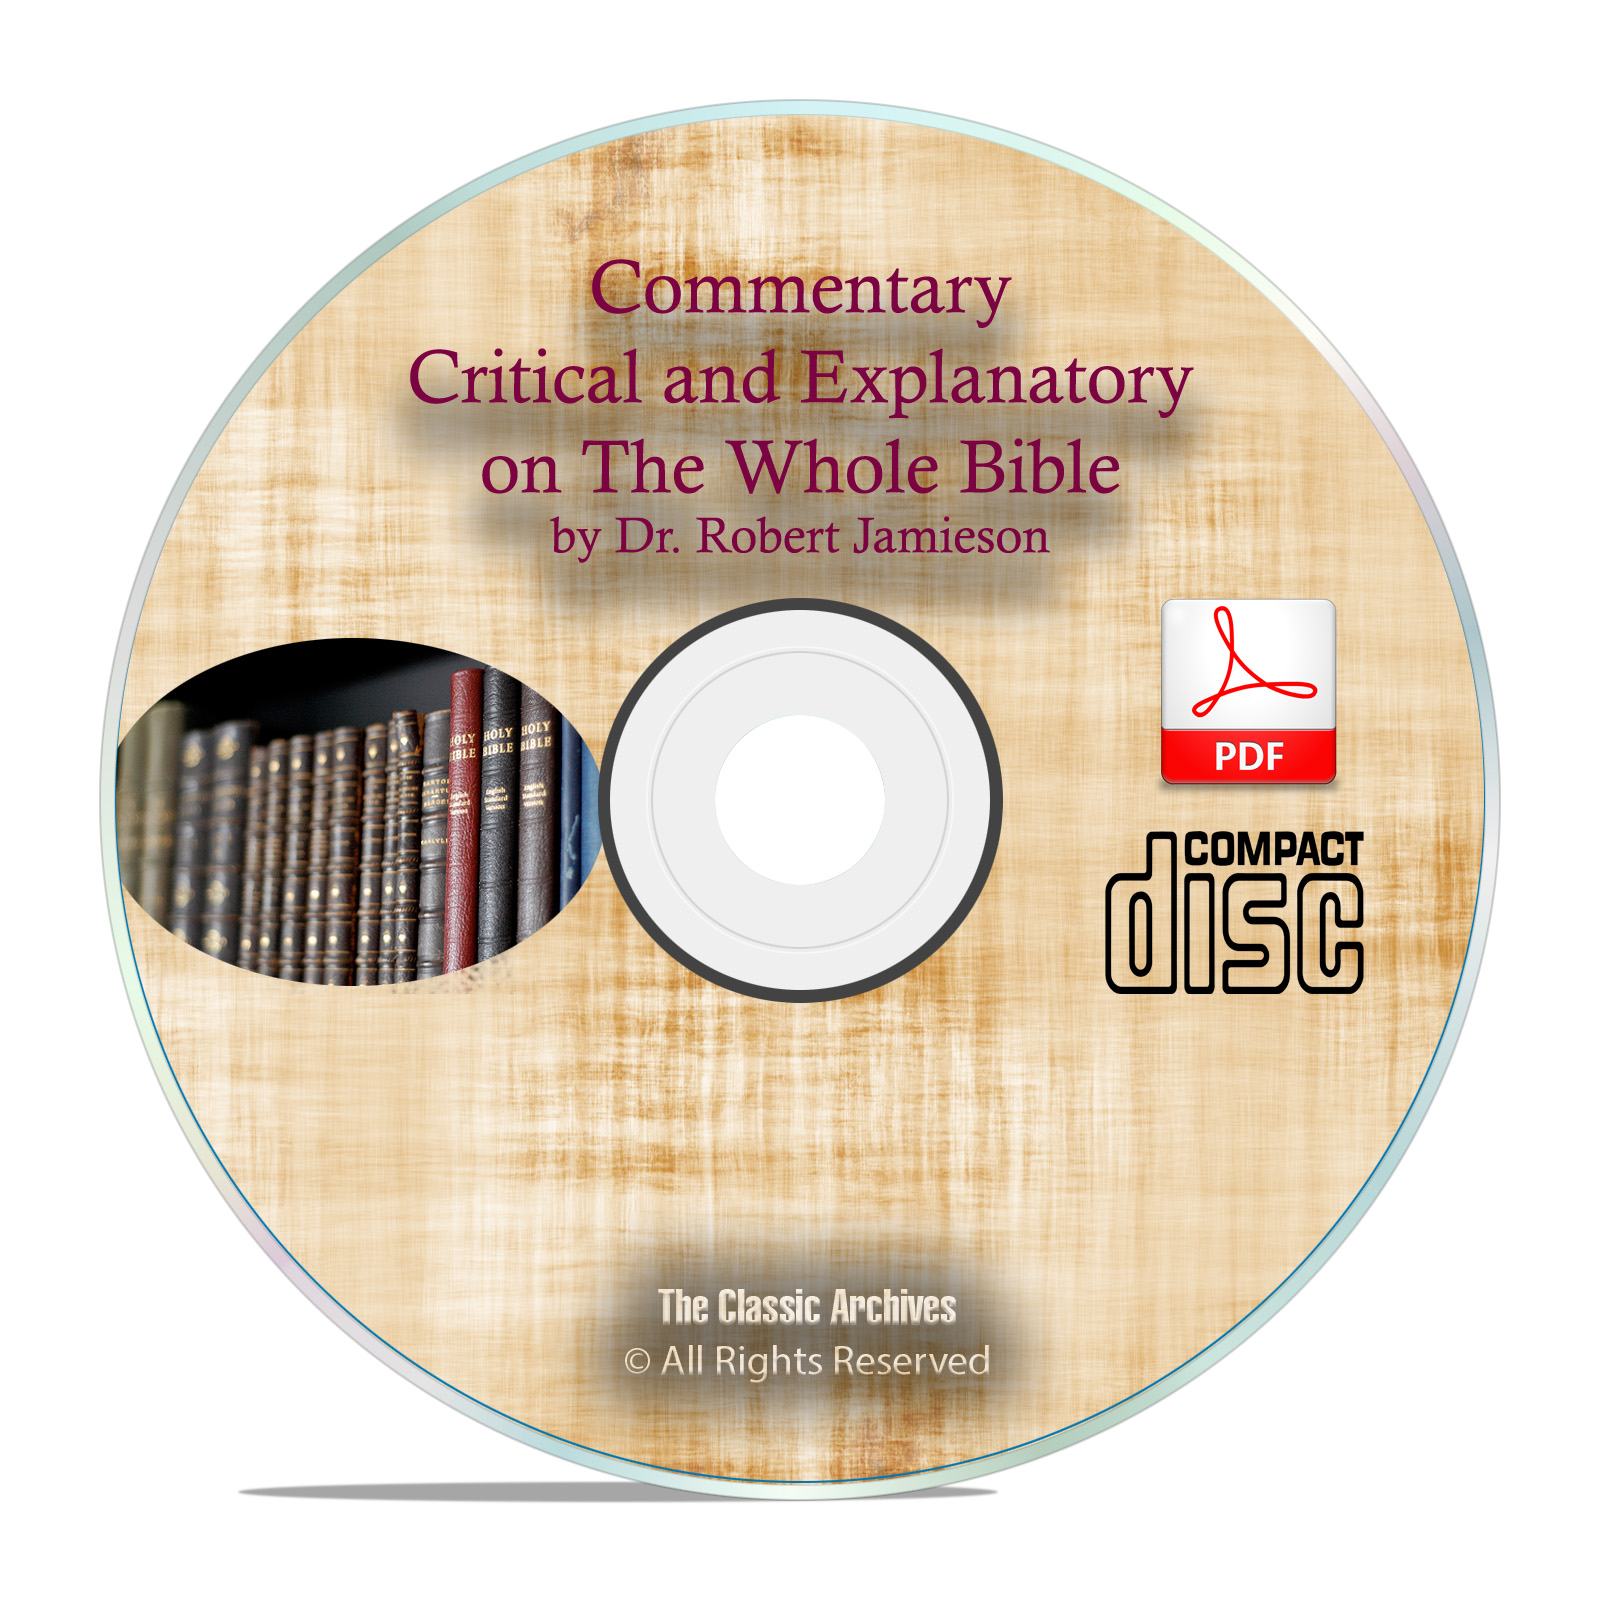 Commentary Critical & Explanatory,Whole Bible Old & New Testaments PDF CD